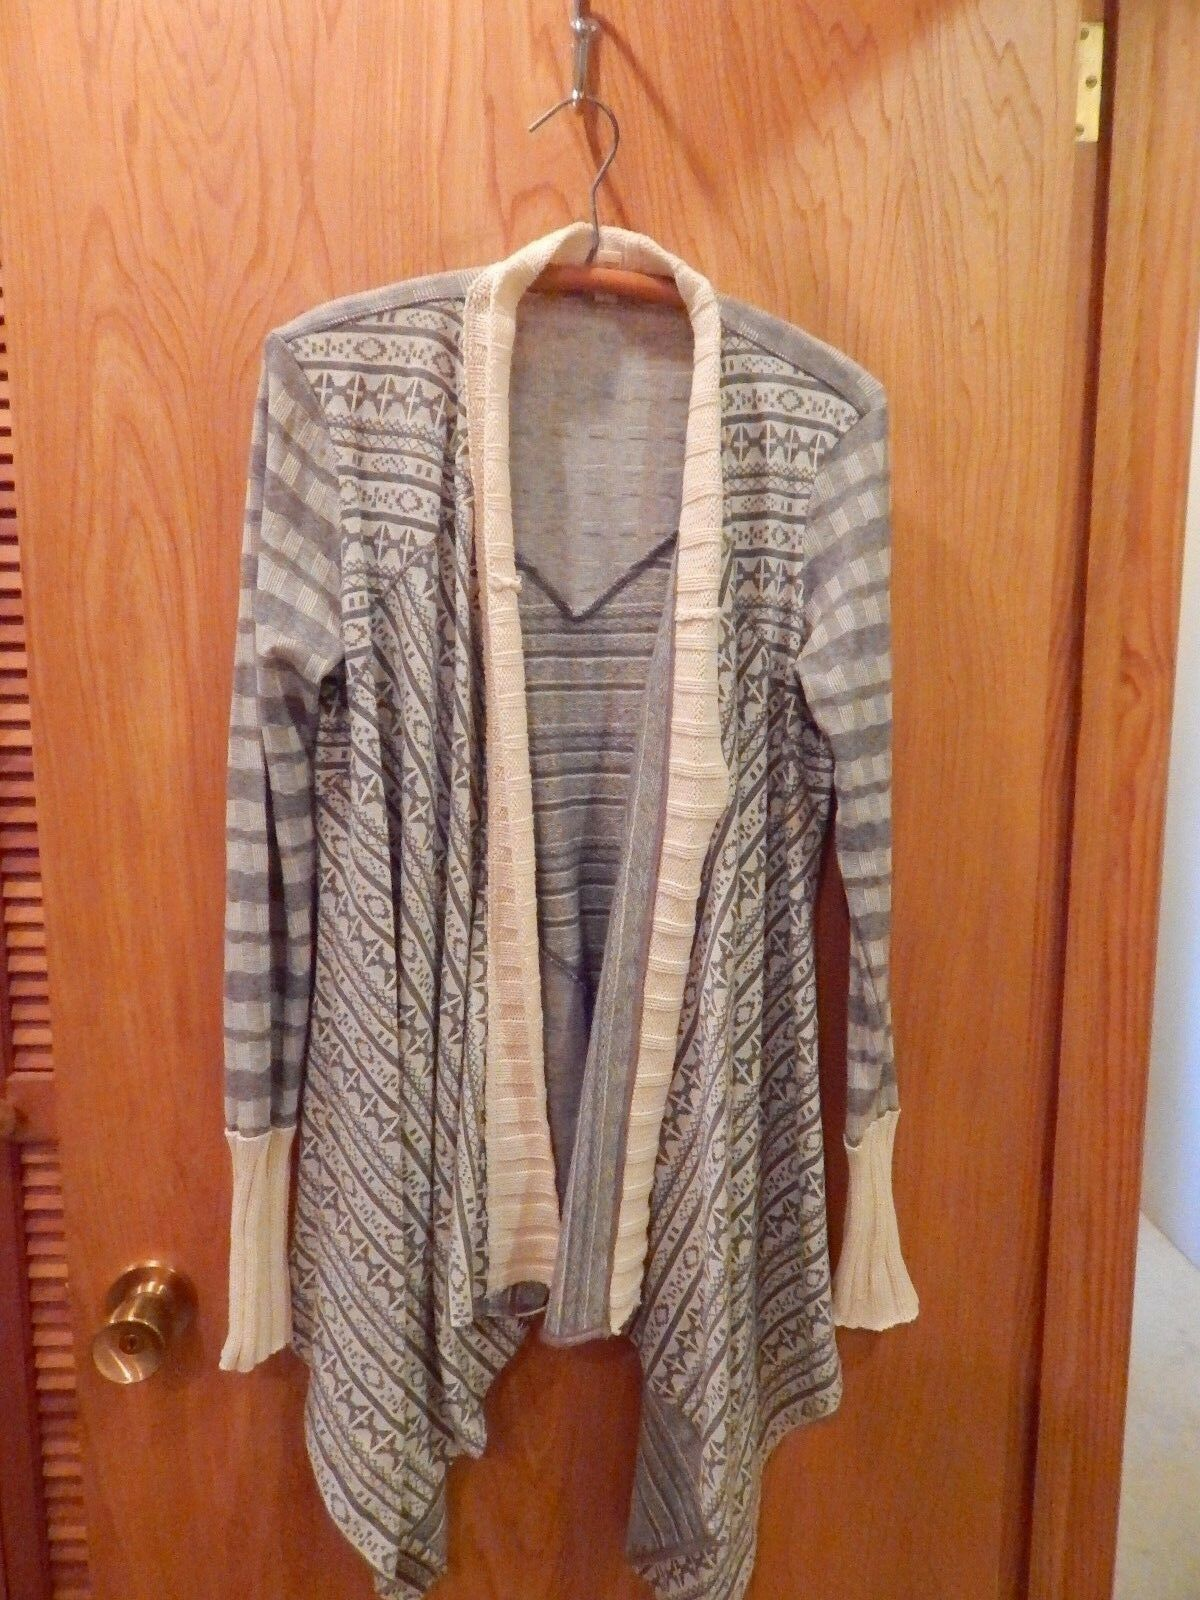 NWOT Anthropologie TINY Mazarine Jacquard Cardigan Wrap M unique & Great SPRING